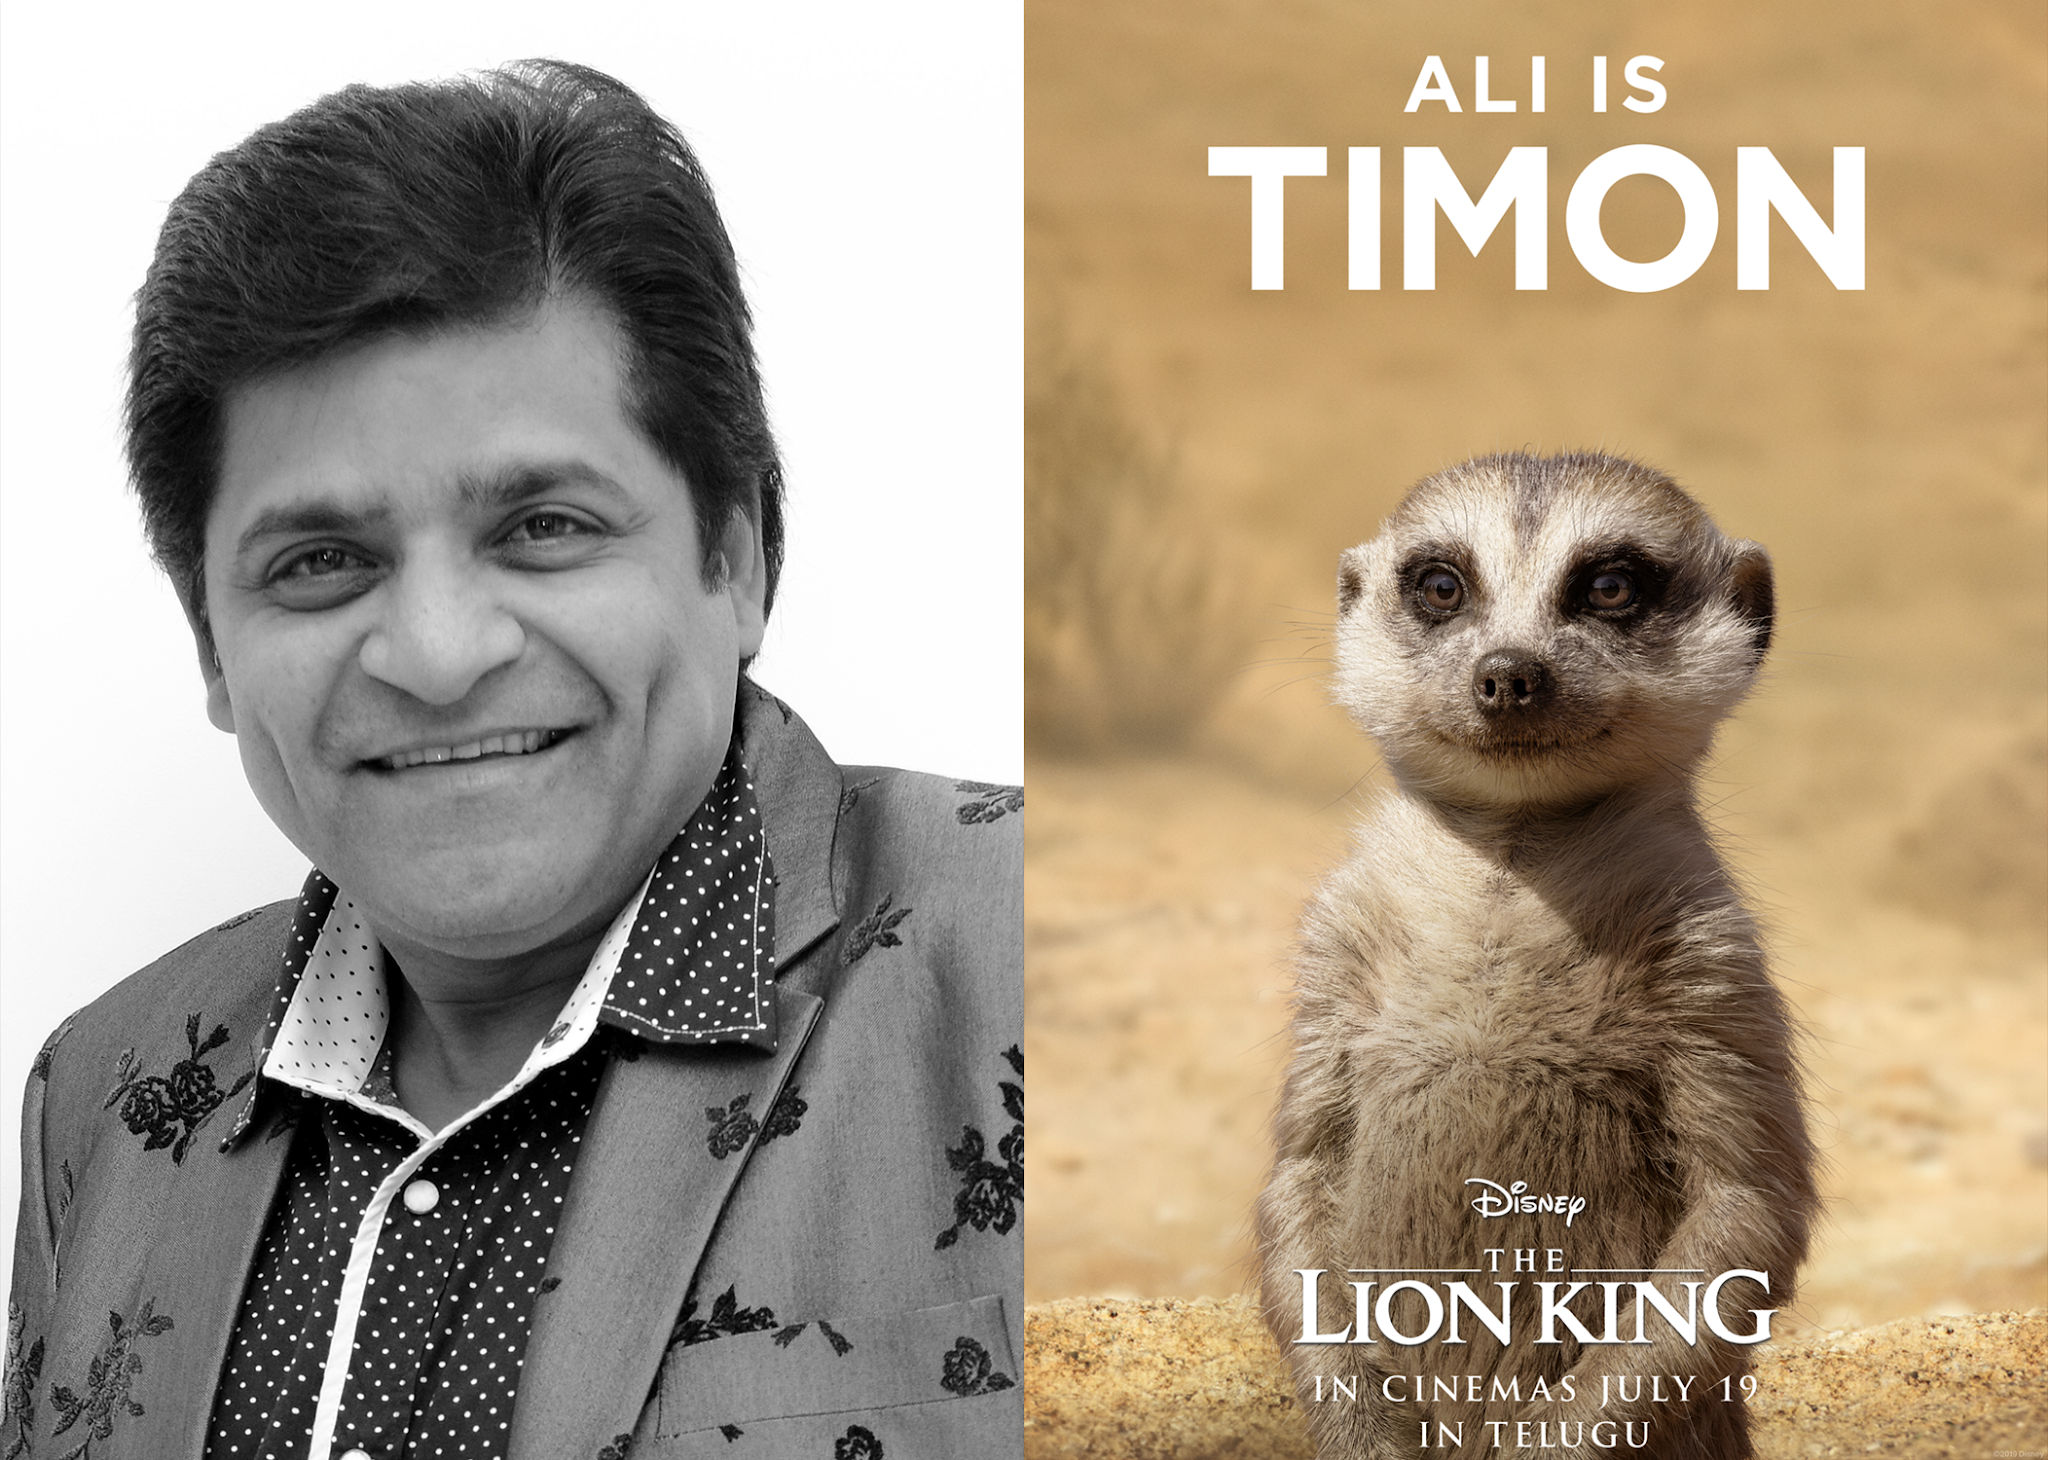 Comedian Ali lend their voice to lion king